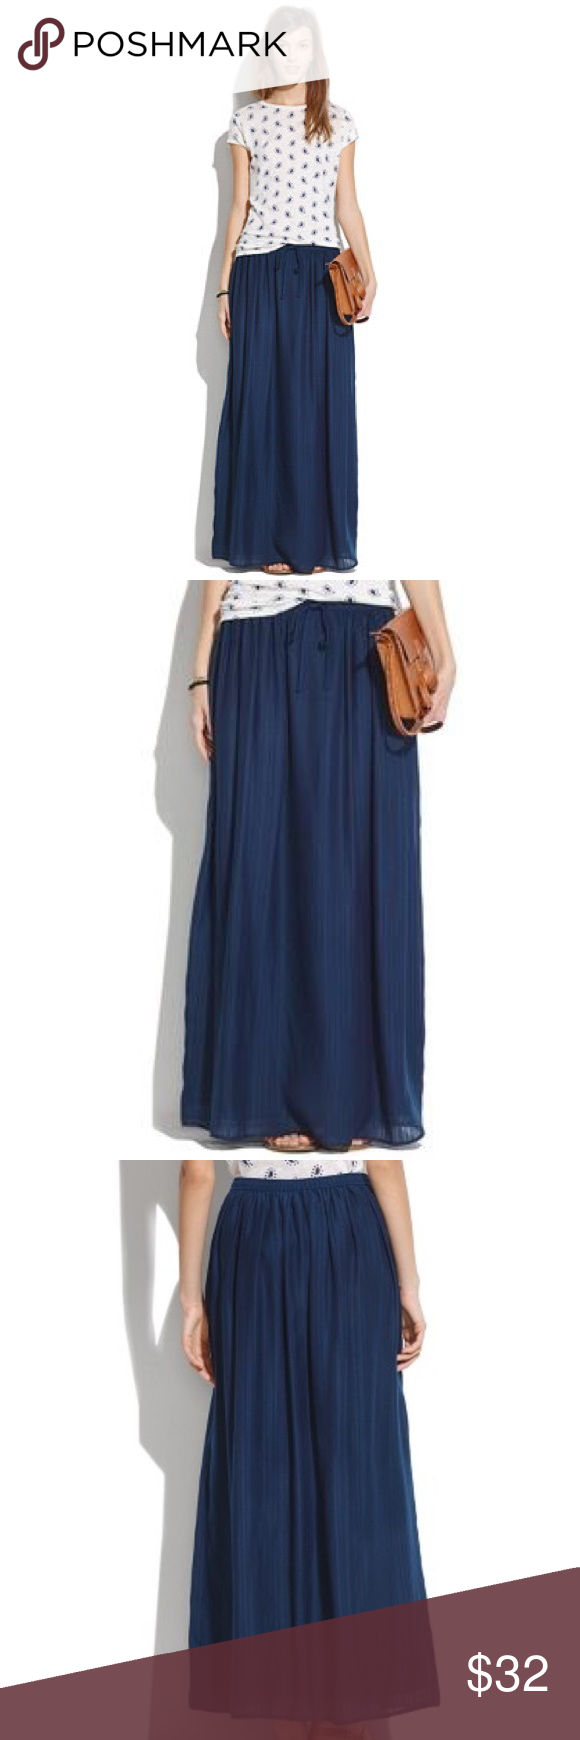 36391e554 NWOT Madewell Skyward Navy Maxi Skirt Long and floaty, this pull-on Madewell  NWOT